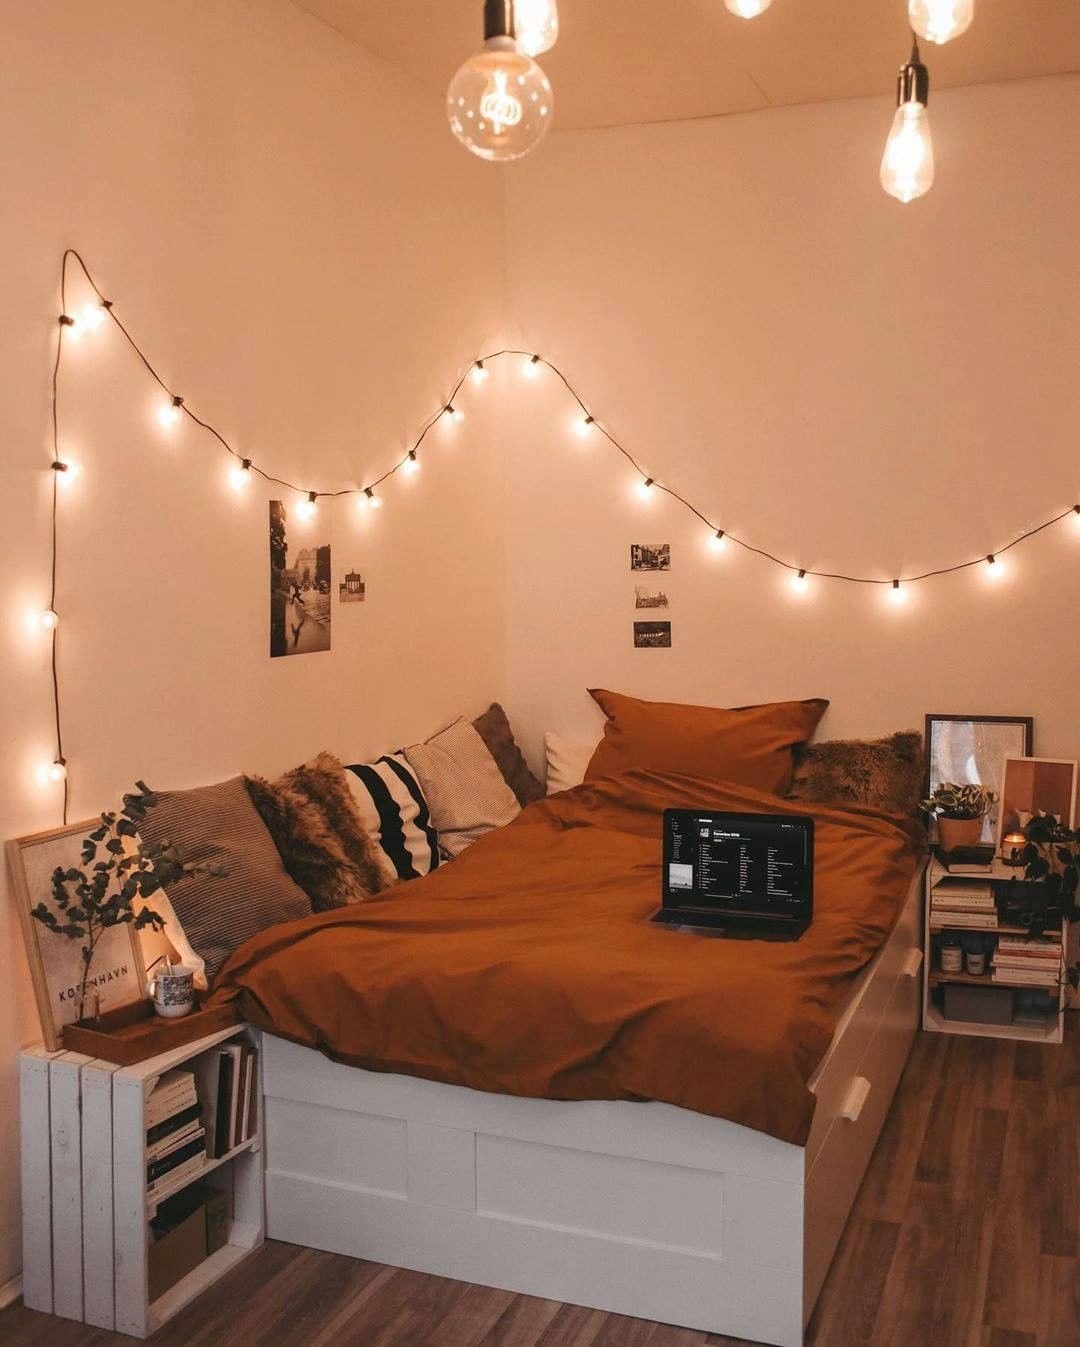 Provenance De La Photo Instagram My Bedroom Goals Interiordesign Interiors In 2020 Cozy Room Decor Cozy Room Room Decor